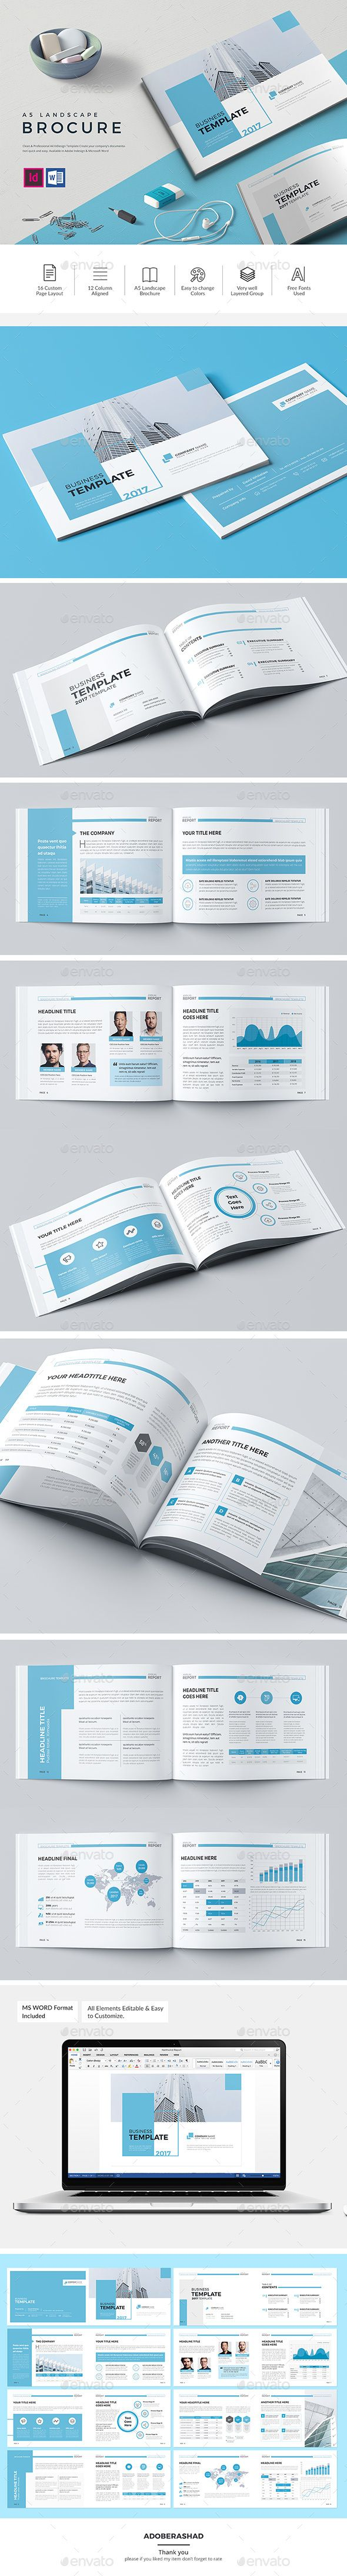 The Blue Landscape Brochure — InDesign INDD #brand #professional • Available here ➝ https://graphicriver.net/item/the-blue-landscape-brochure/20619186?ref=pxcr